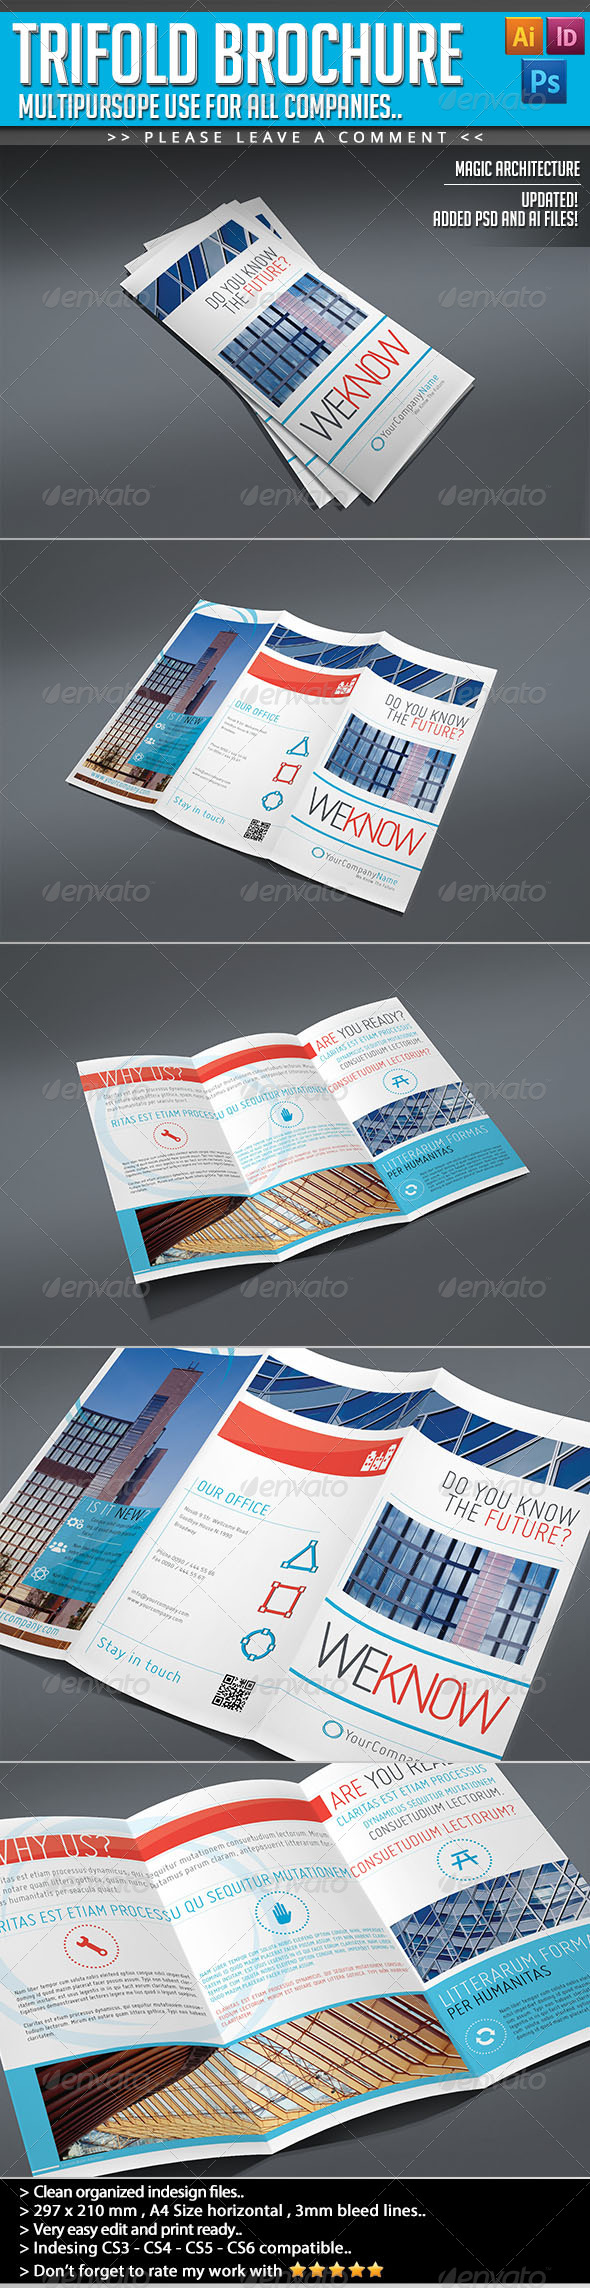 Trifold Brochure - The Magic of Architecture - Informational Brochures